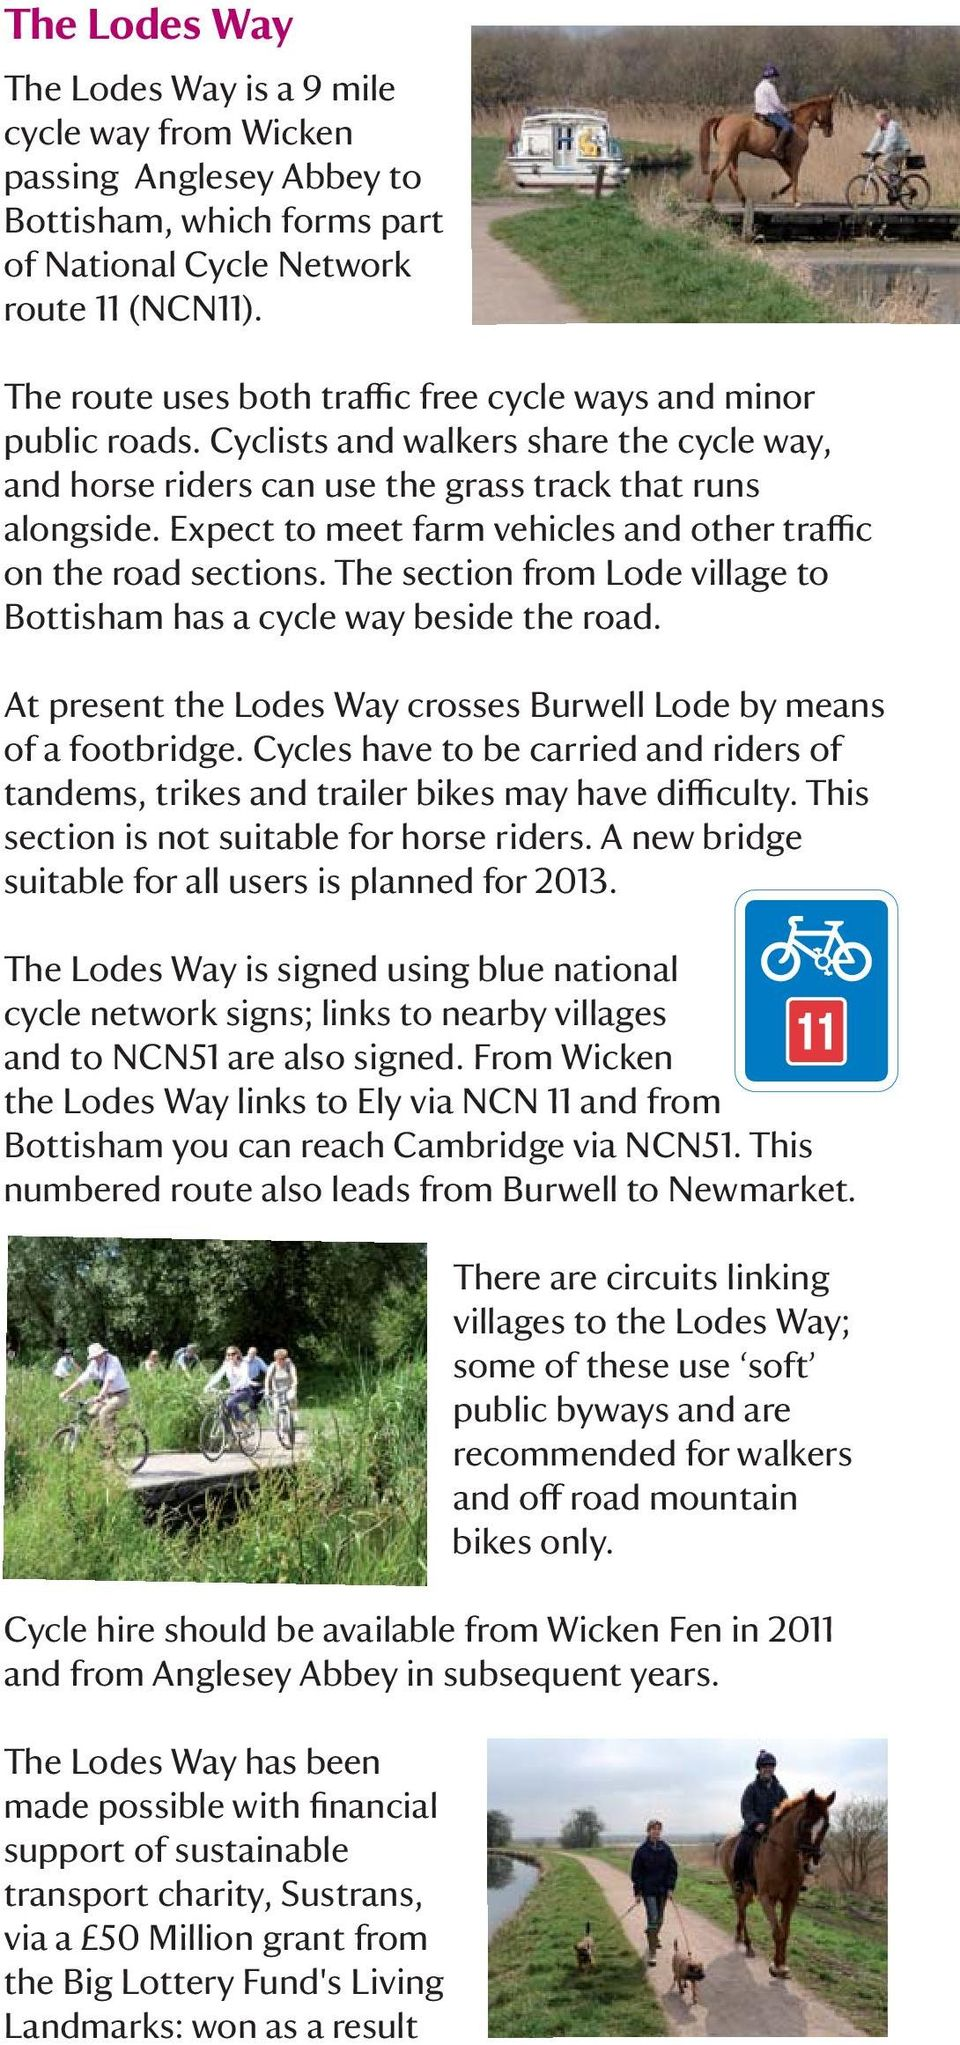 Expect to meet farm vehicles and other traffic on the road sections. The section from Lode village to Bottisham has a cycle way beside the road.